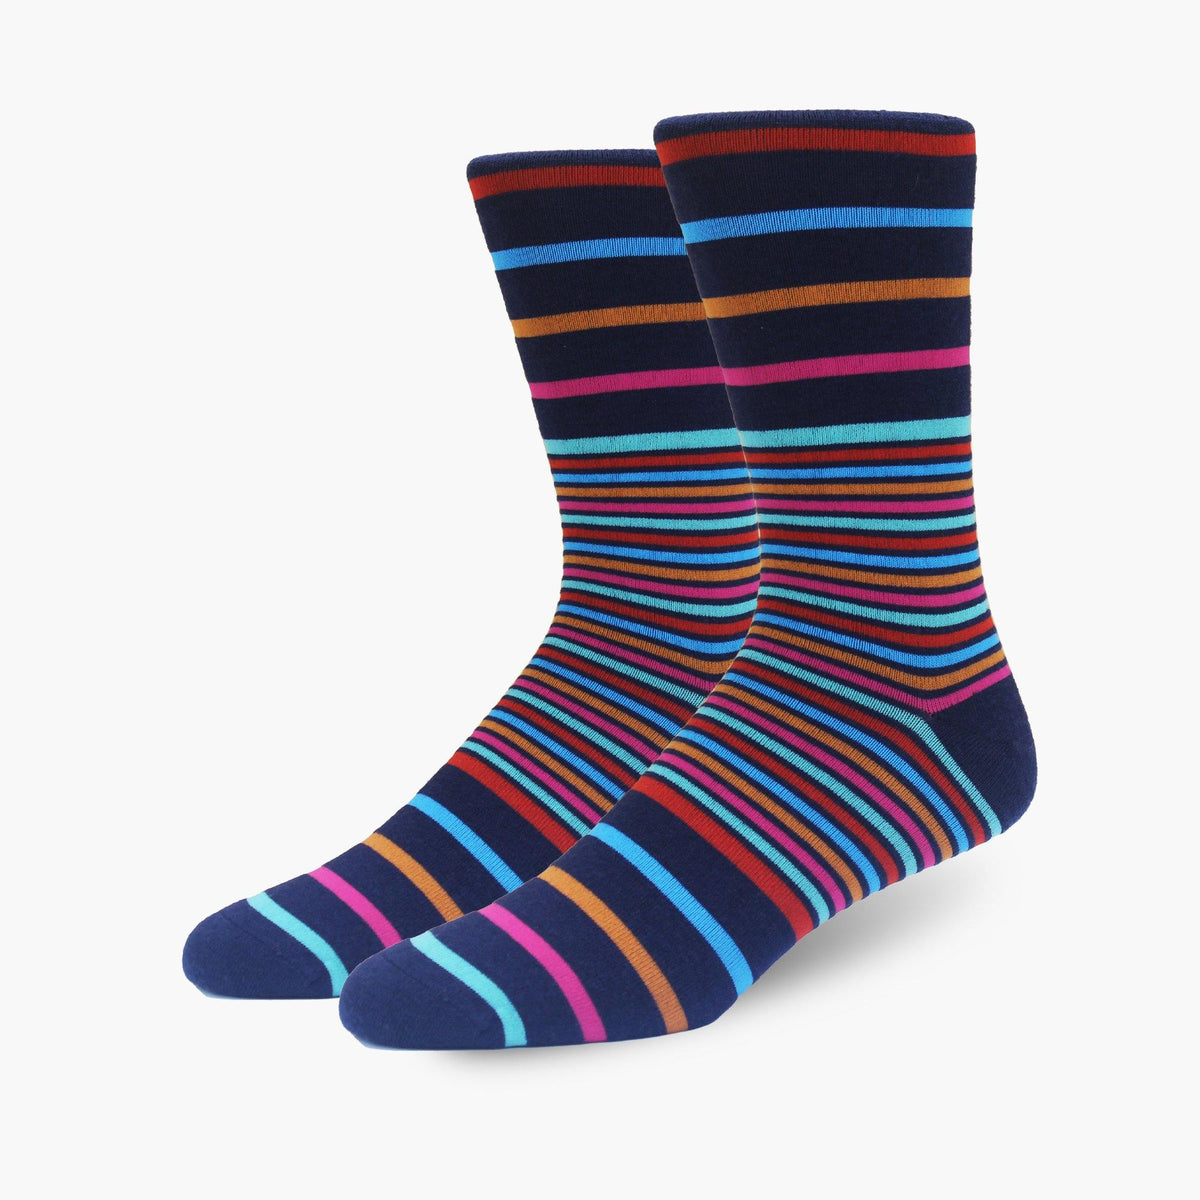 Navy Multi Stripes Merino Wool Dress Swanky Socks - SwankySocks